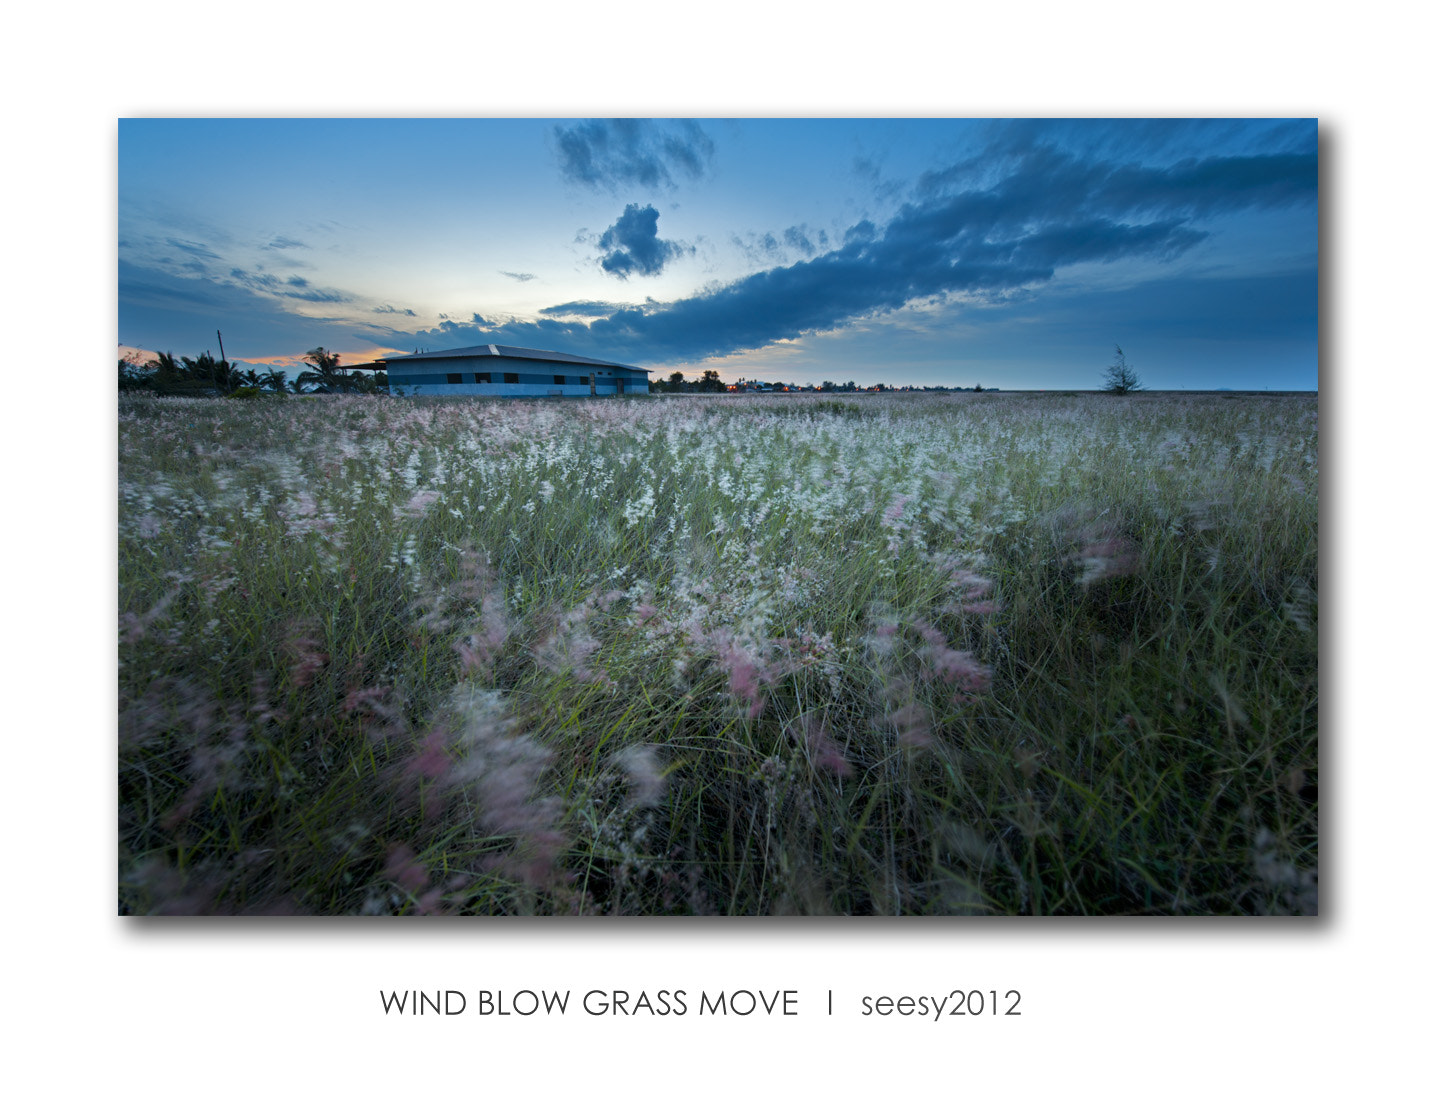 Photograph Wind Blow Grass Move by Lee Seesy on 500px